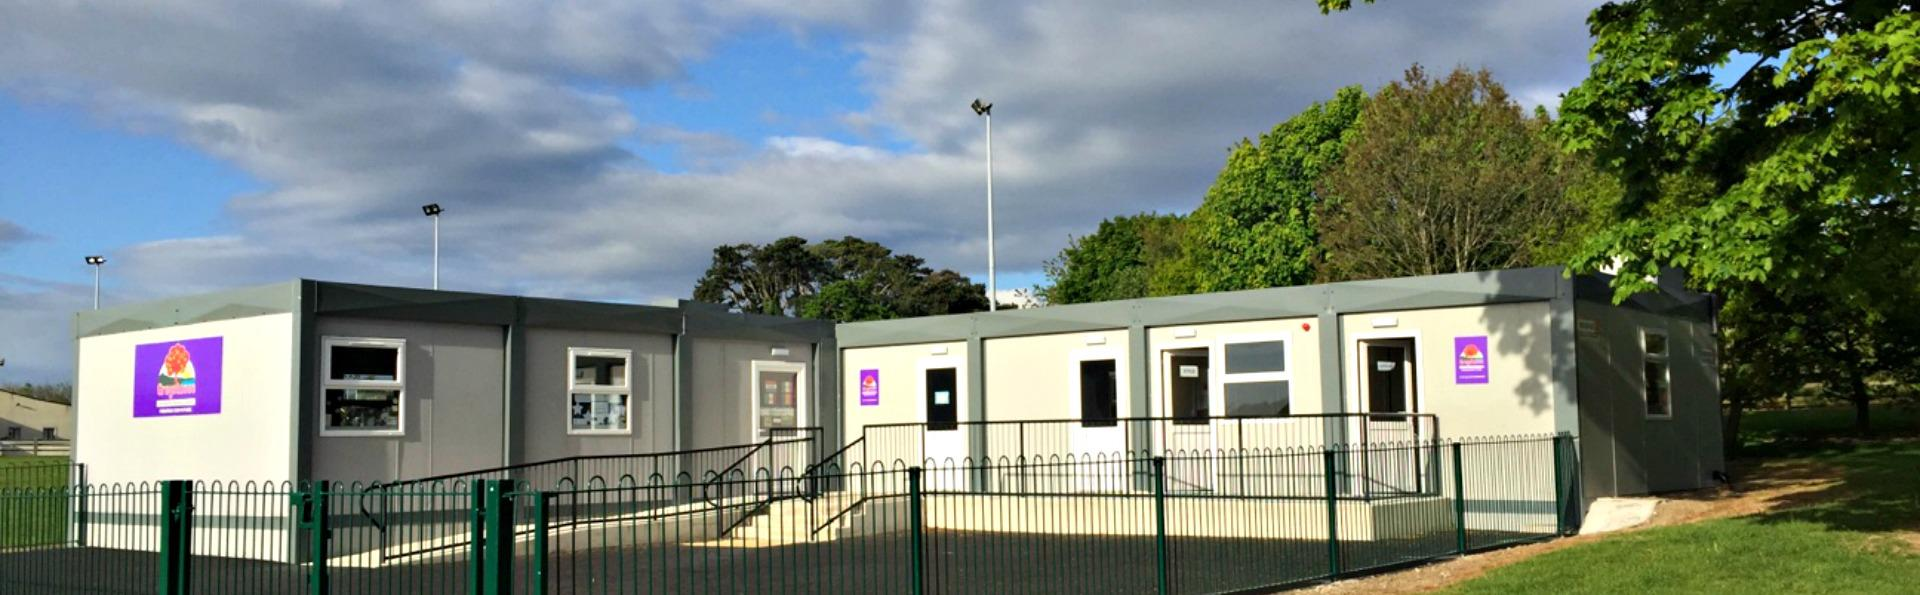 Instaspace provided a solution for Greystones Comm. National School